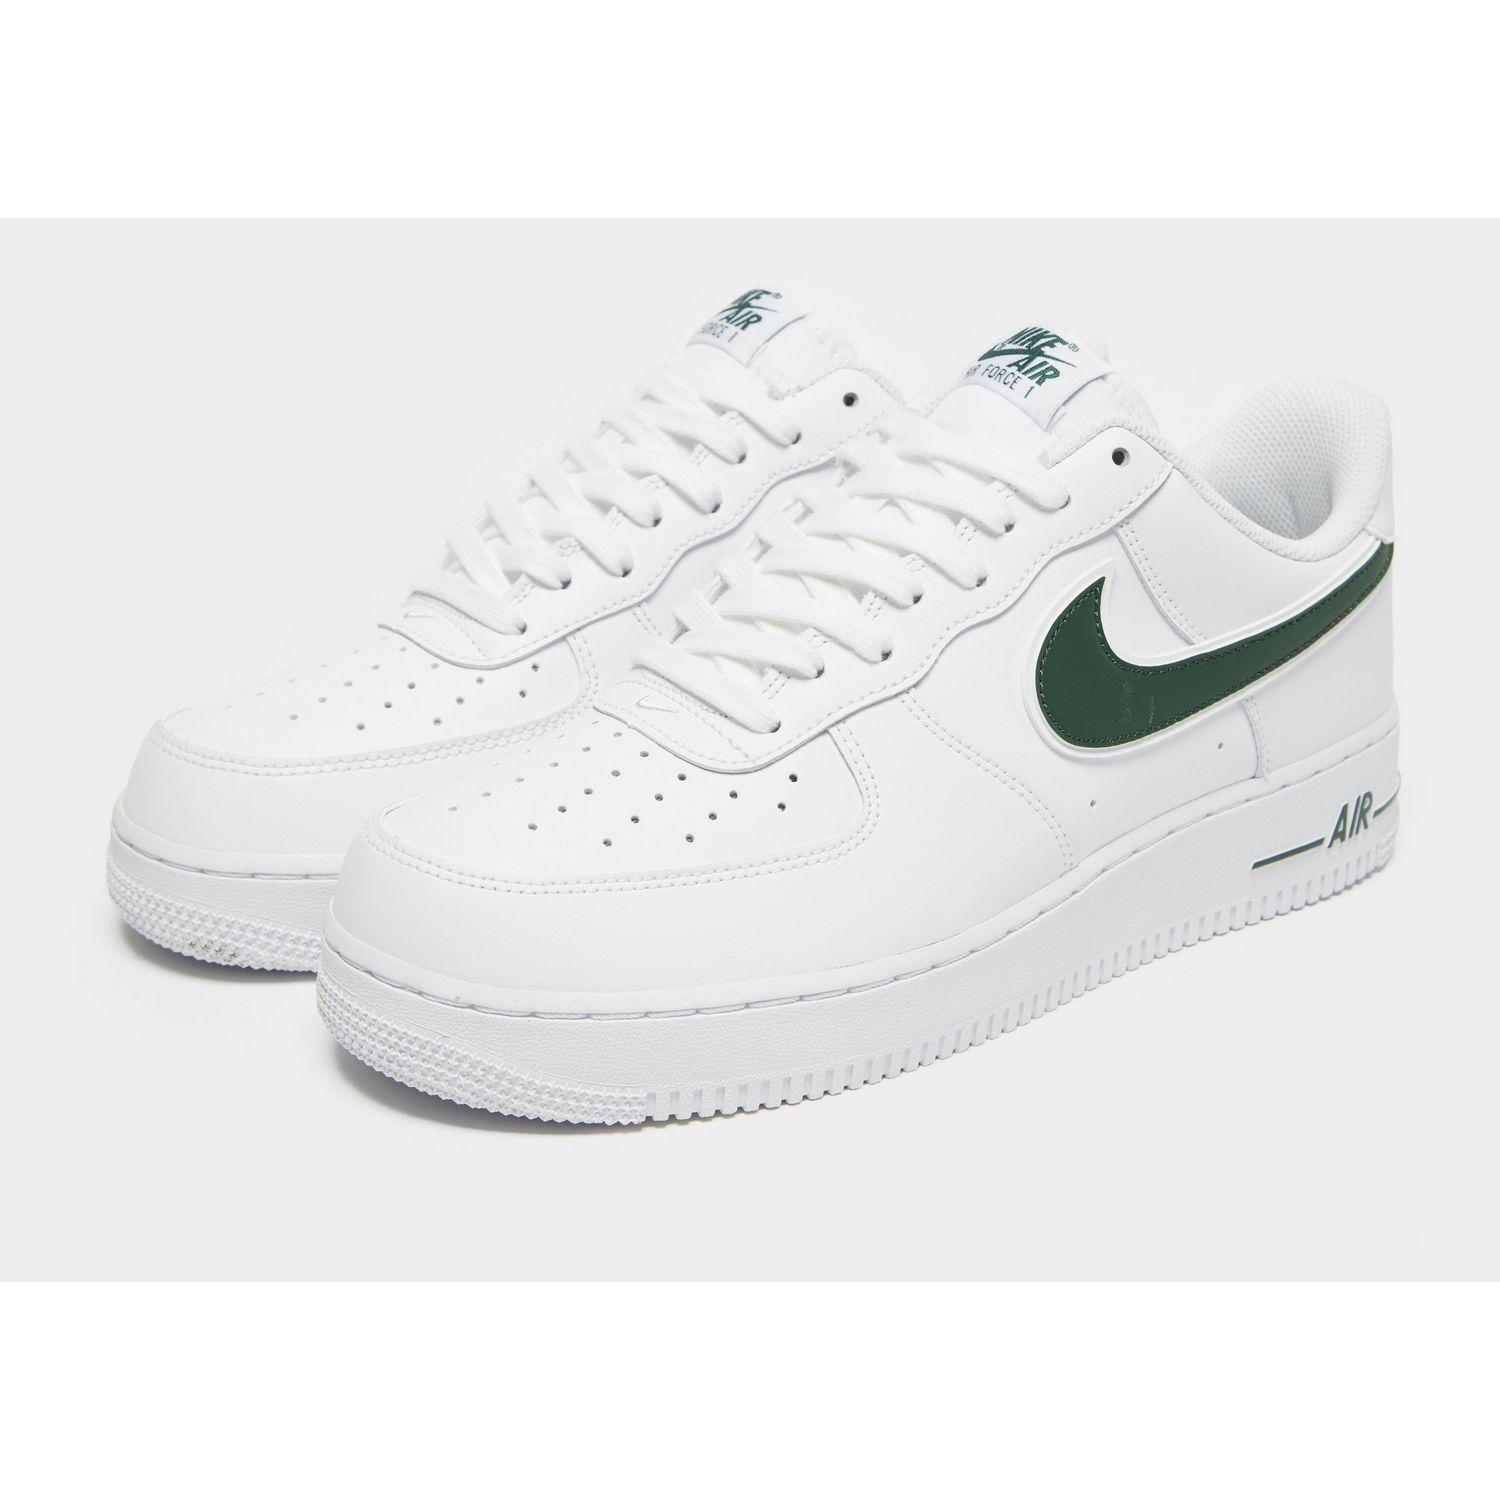 Nike Leather Air Force 1 '07 Low Essential in White/Green (White ...